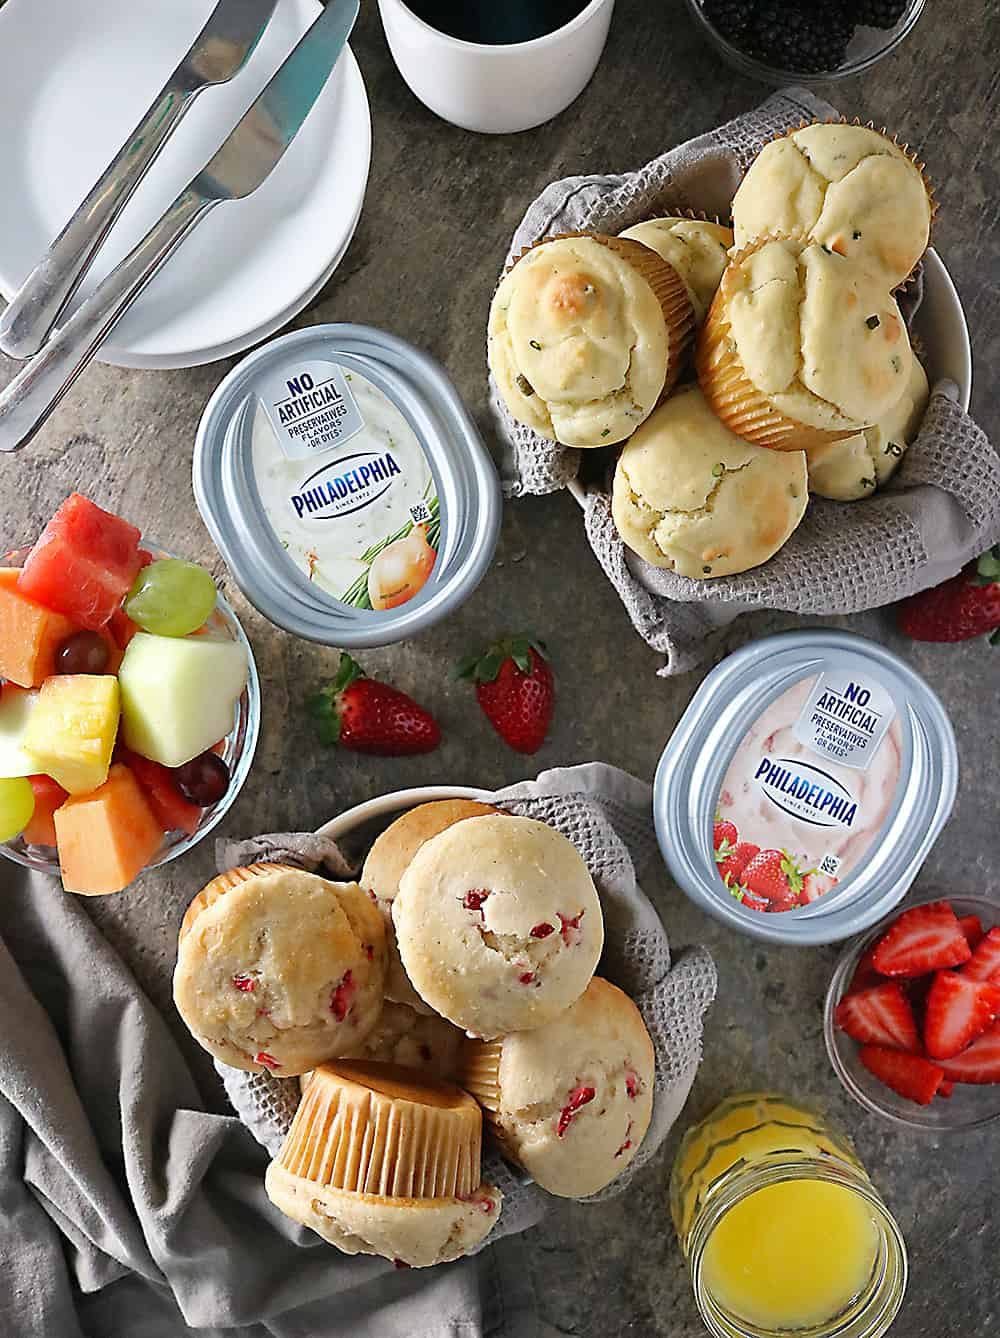 PHILADELPHIA Cream Cheese Muffin Buffet Photo